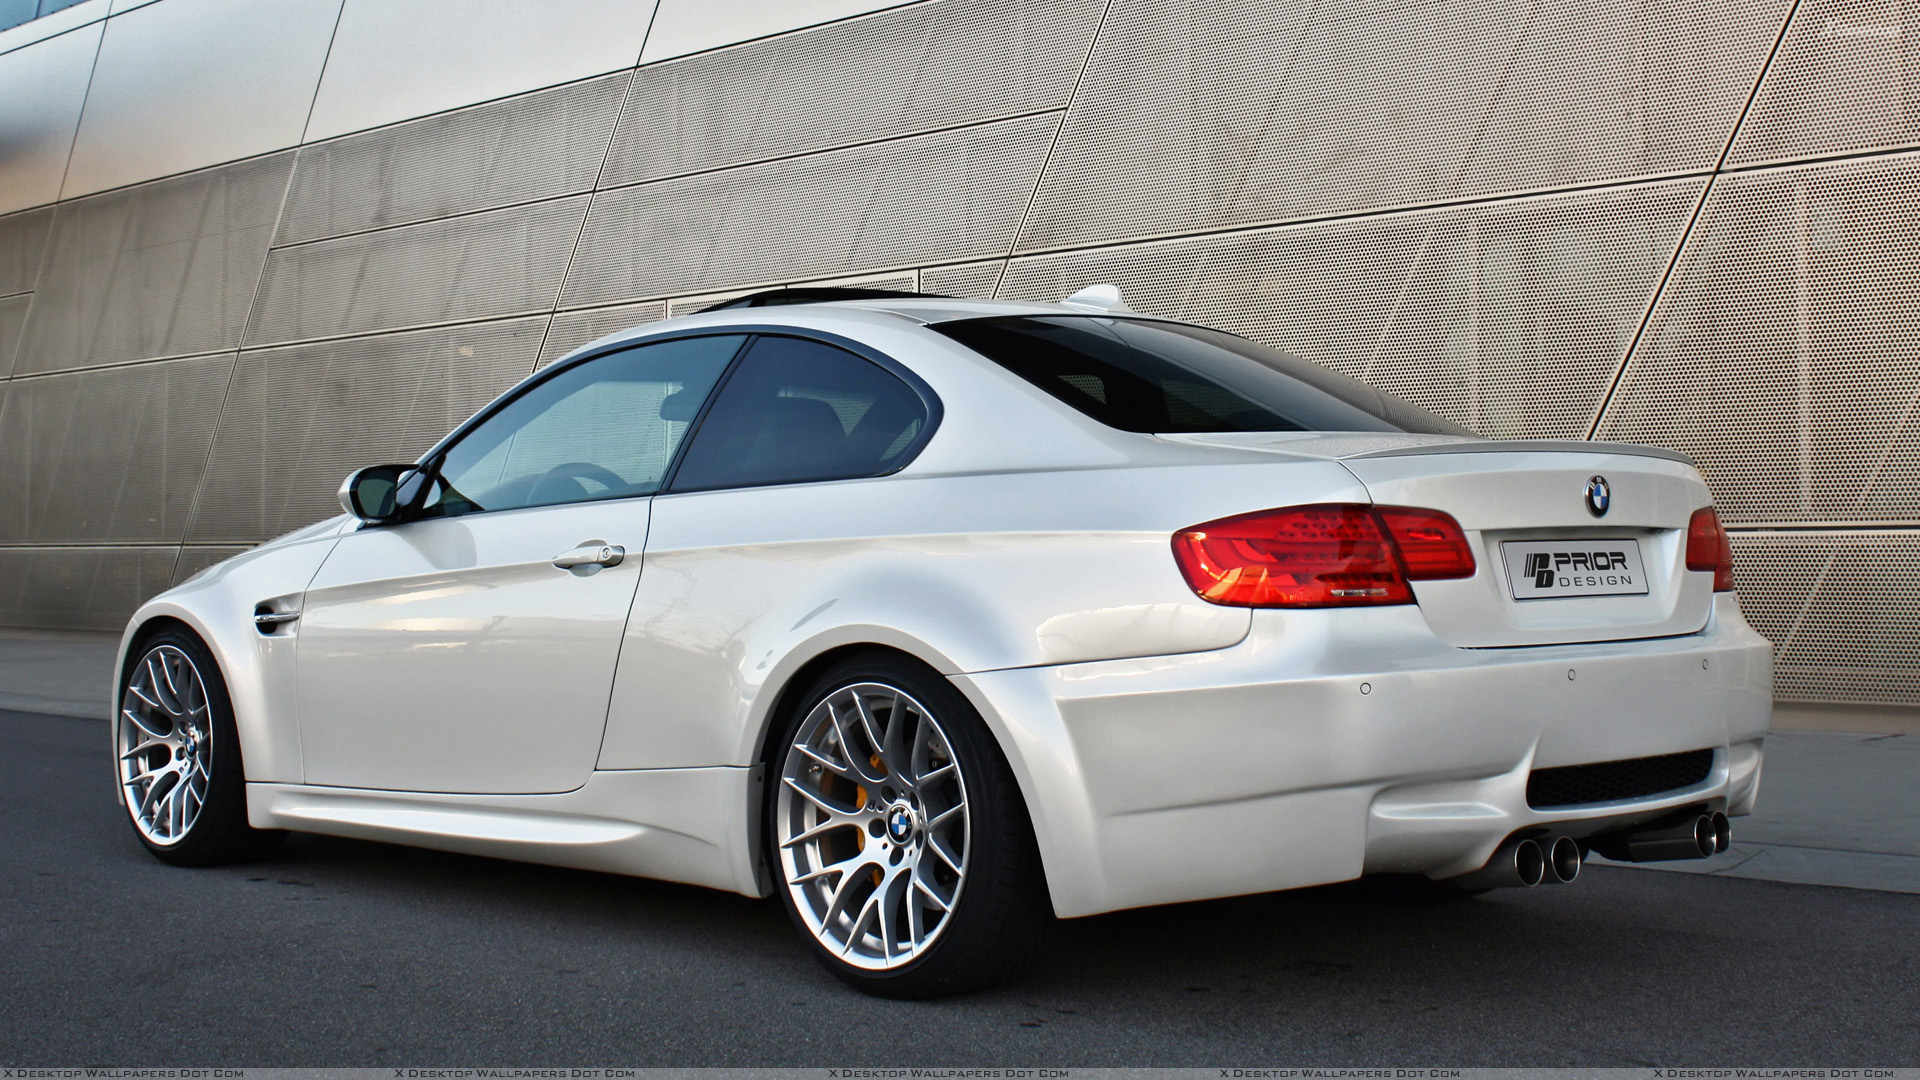 3 Reasons Why I Think The E92 M3 Is The Best Of The Bunch